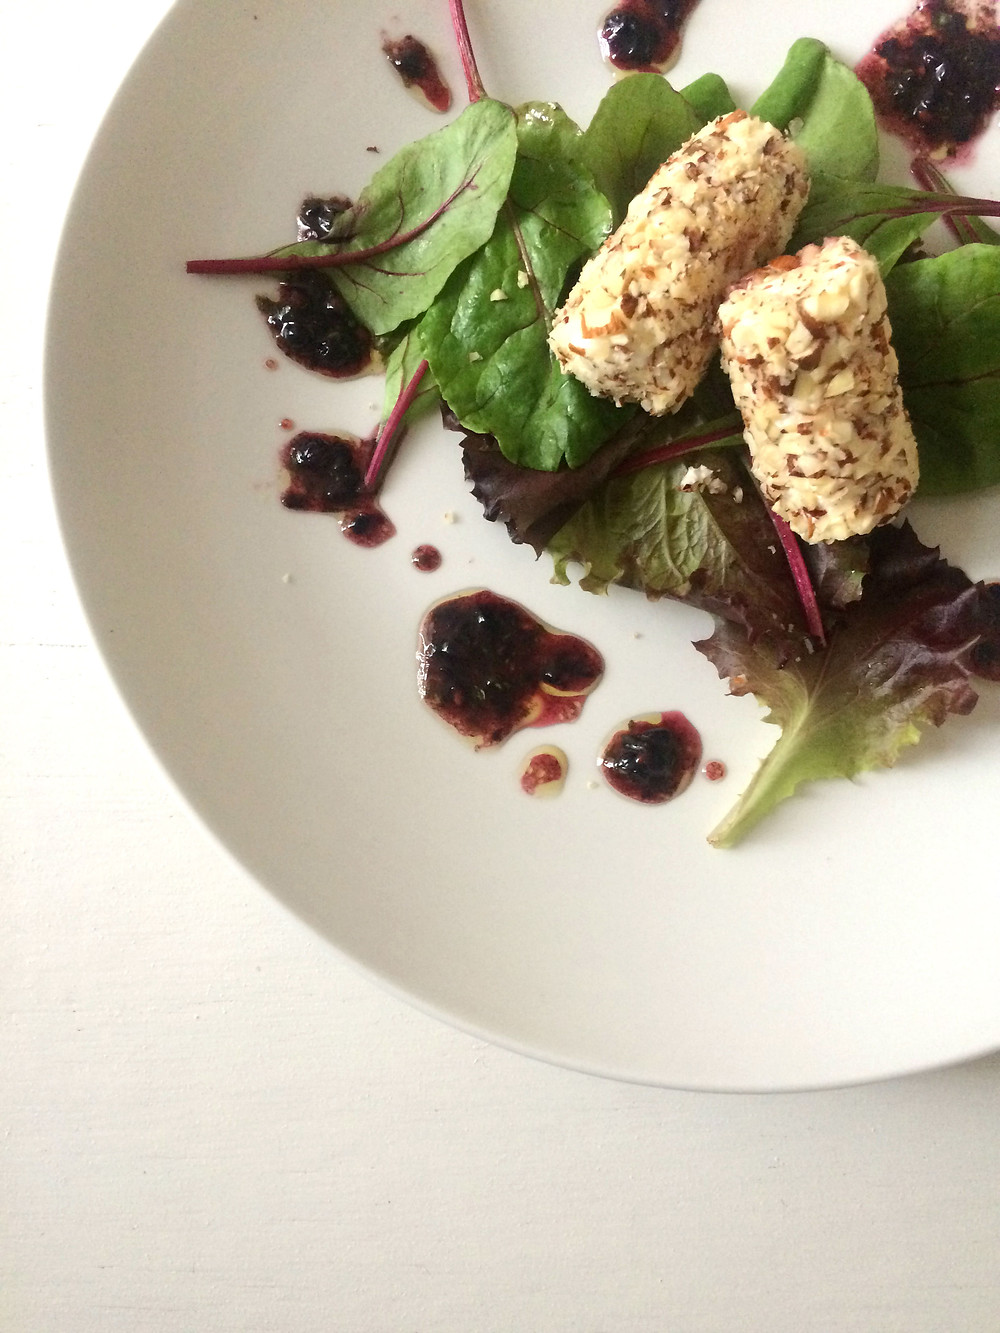 Nut crusted goats cheese salad with blackberry and basil vinaigrette